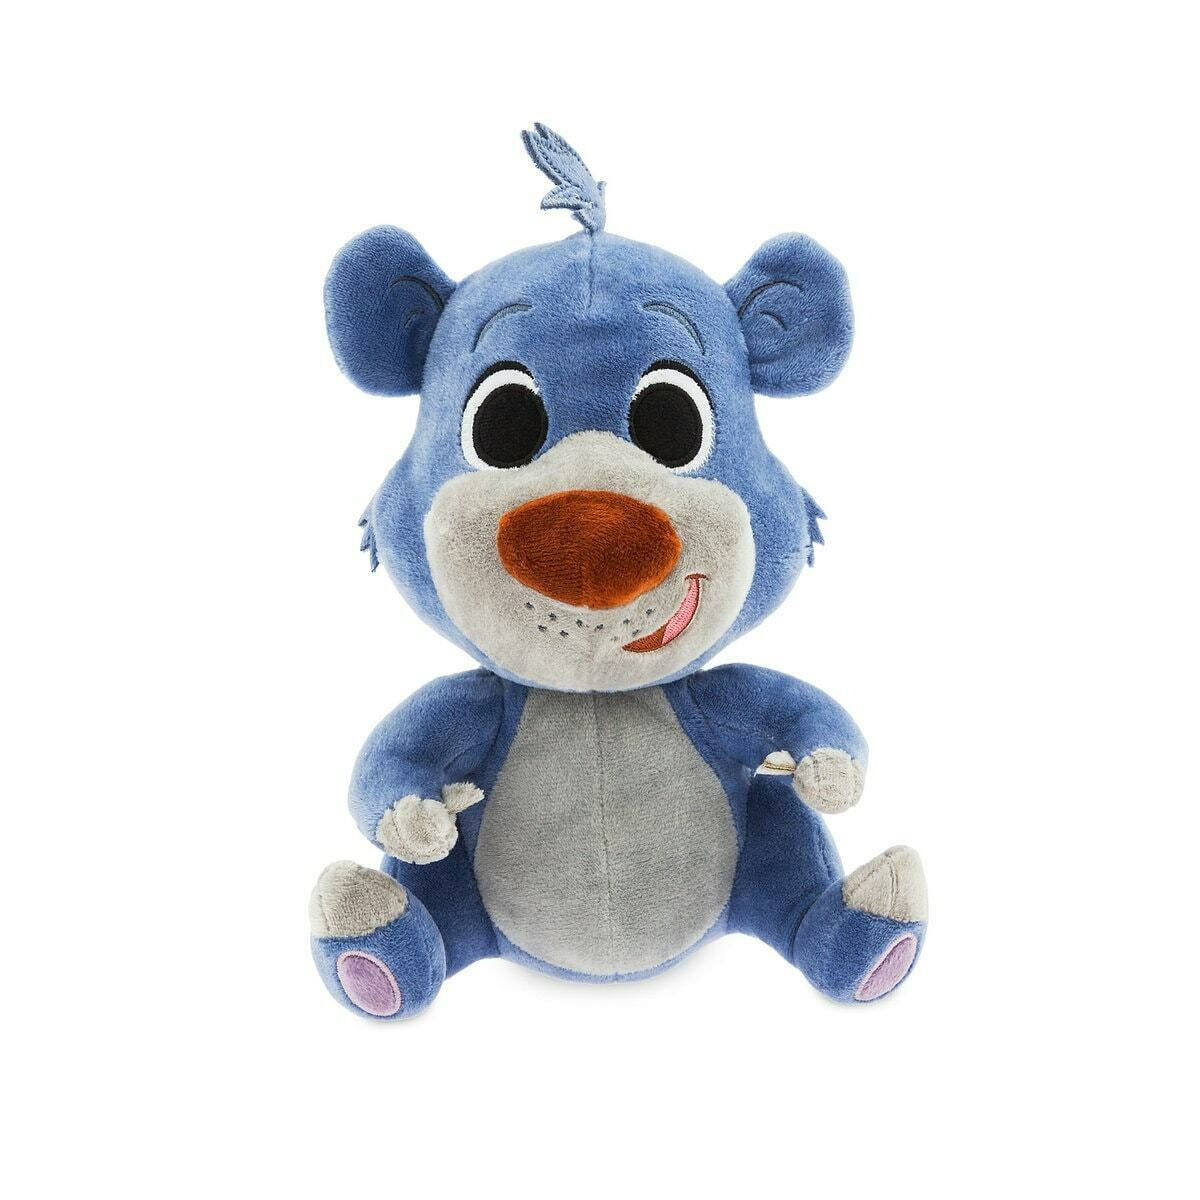 Baloo Plush - The Jungle Book - Disney Furrytale friends